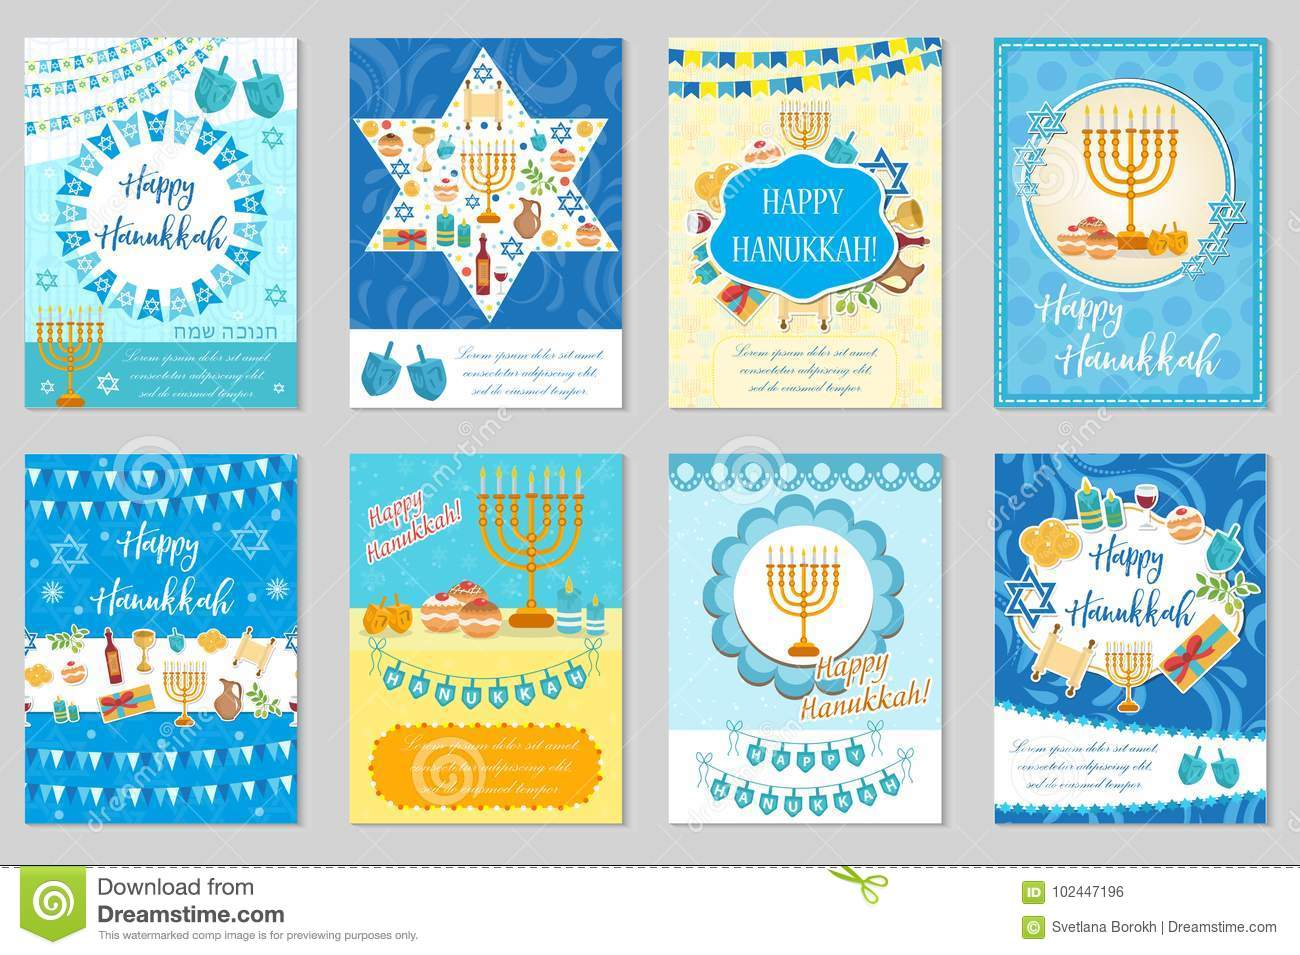 Happy Hanukkah set of greeting cards, flyer, poster. Hanukkah collection of templates for your invitation design. With